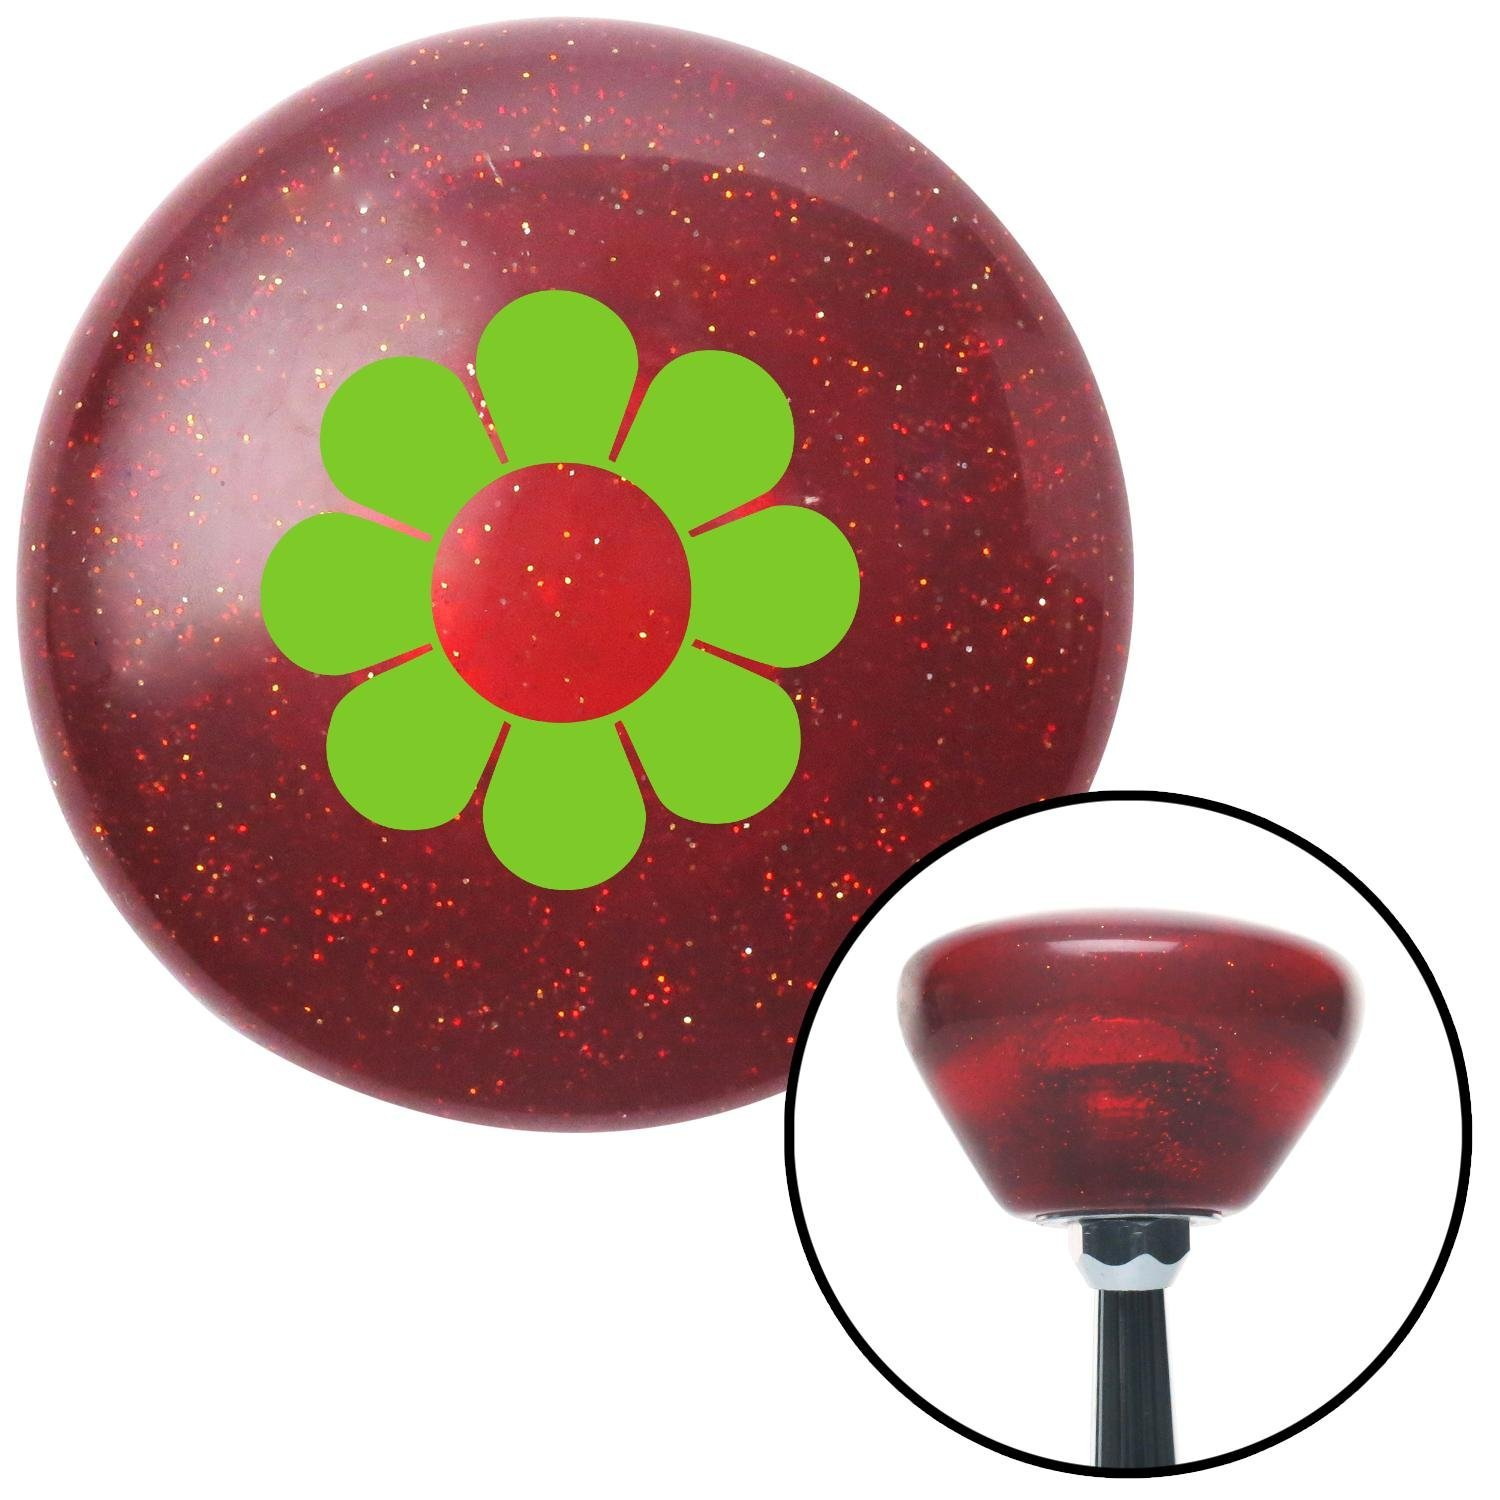 American Shifter 195379 Red Retro Metal Flake Shift Knob with M16 x 1.5 Insert Green Flower Power